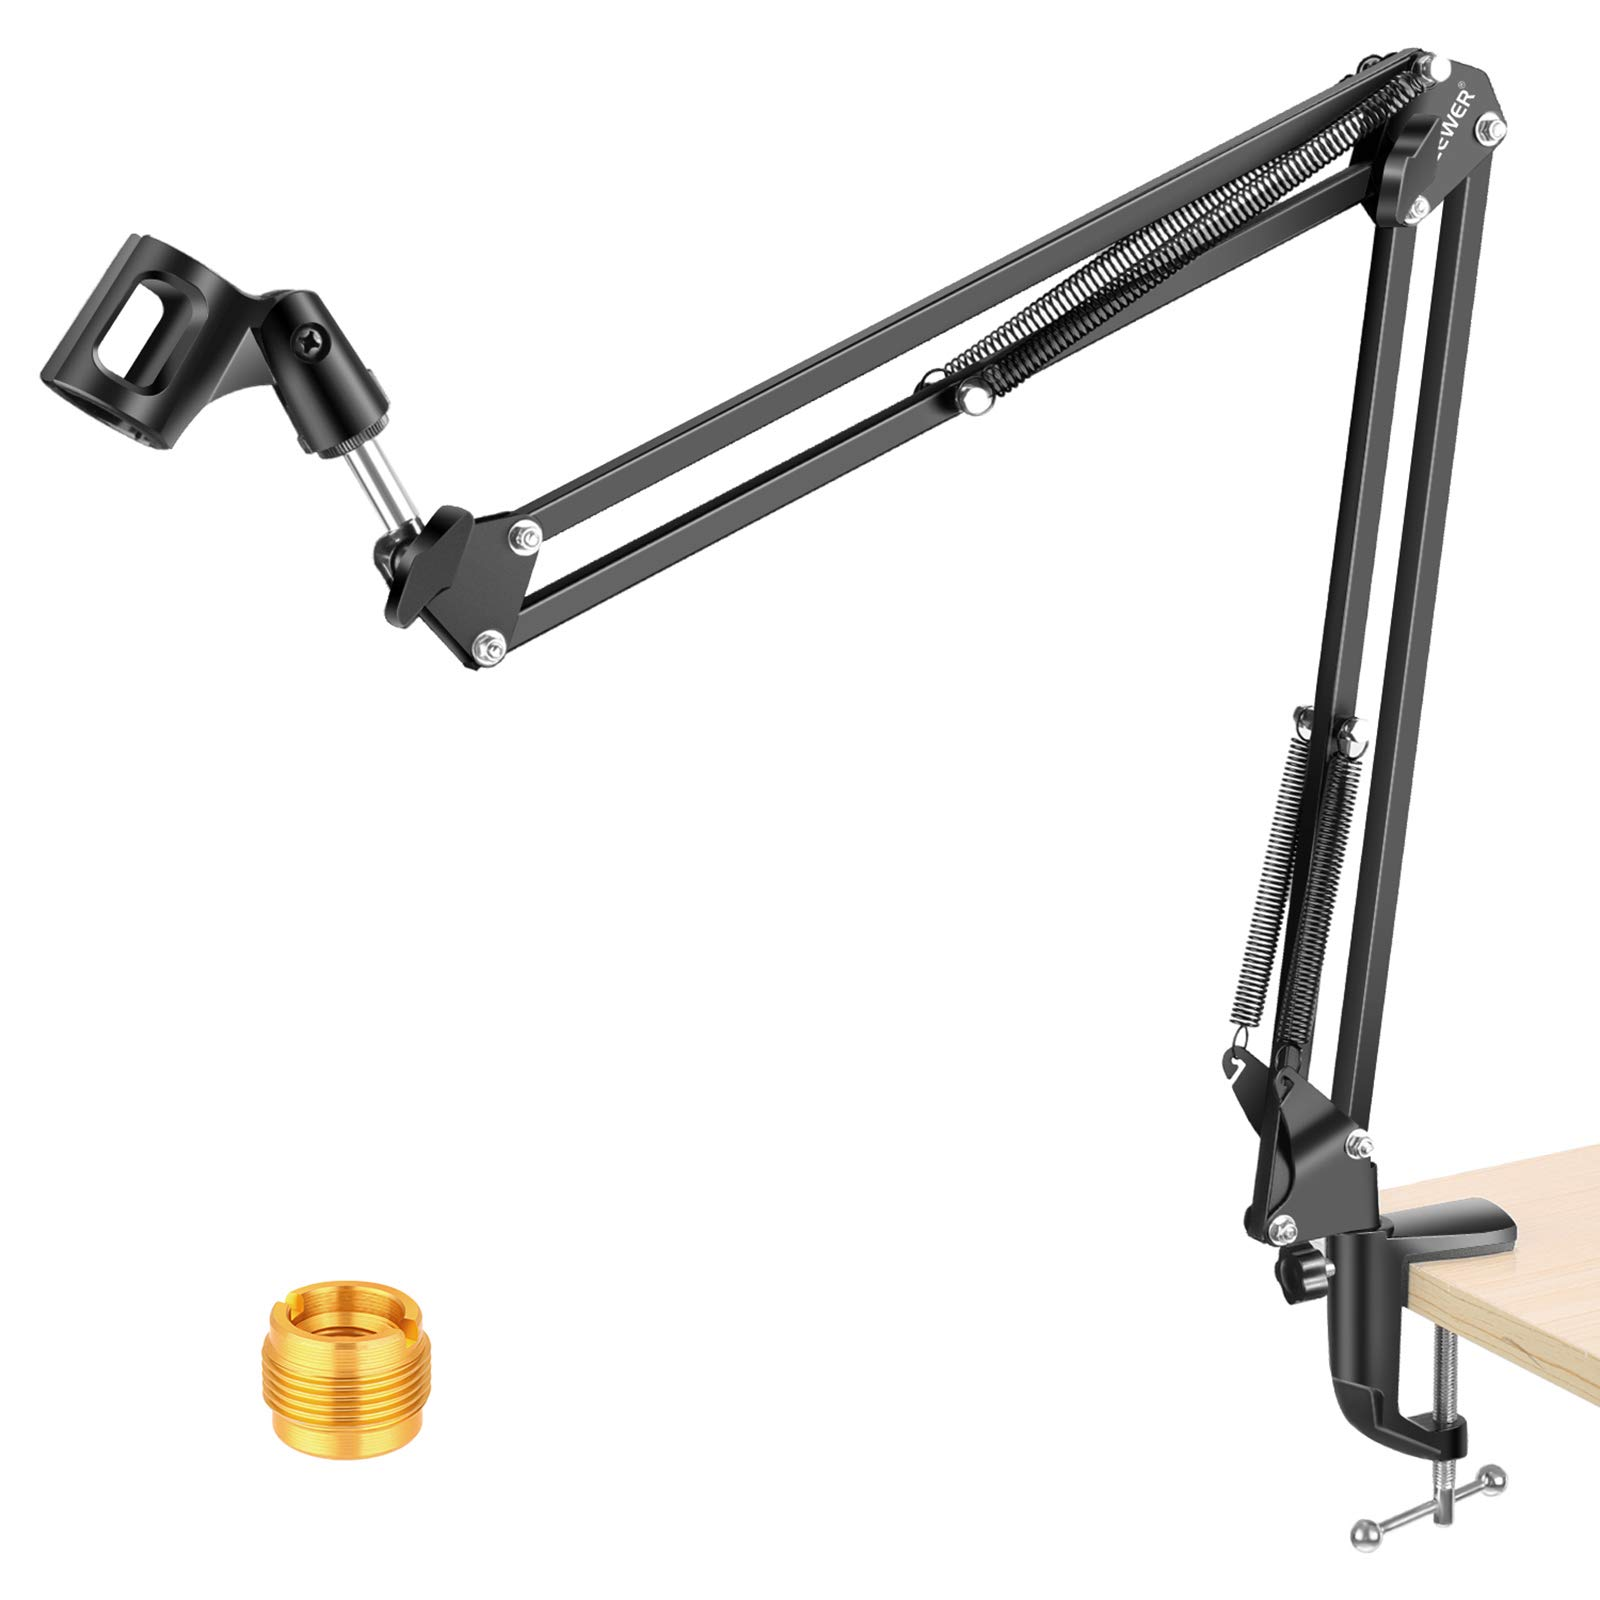 NEEWER Adjustable Microphone Suspension Boom Scissor Arm Stand, Max Load 1 KG Compact Mic Stand for Radio Broadcasting, Voice-Over, Stage and TV Stations, Compatible with Blue Yeti Snowball Yeti X,etc